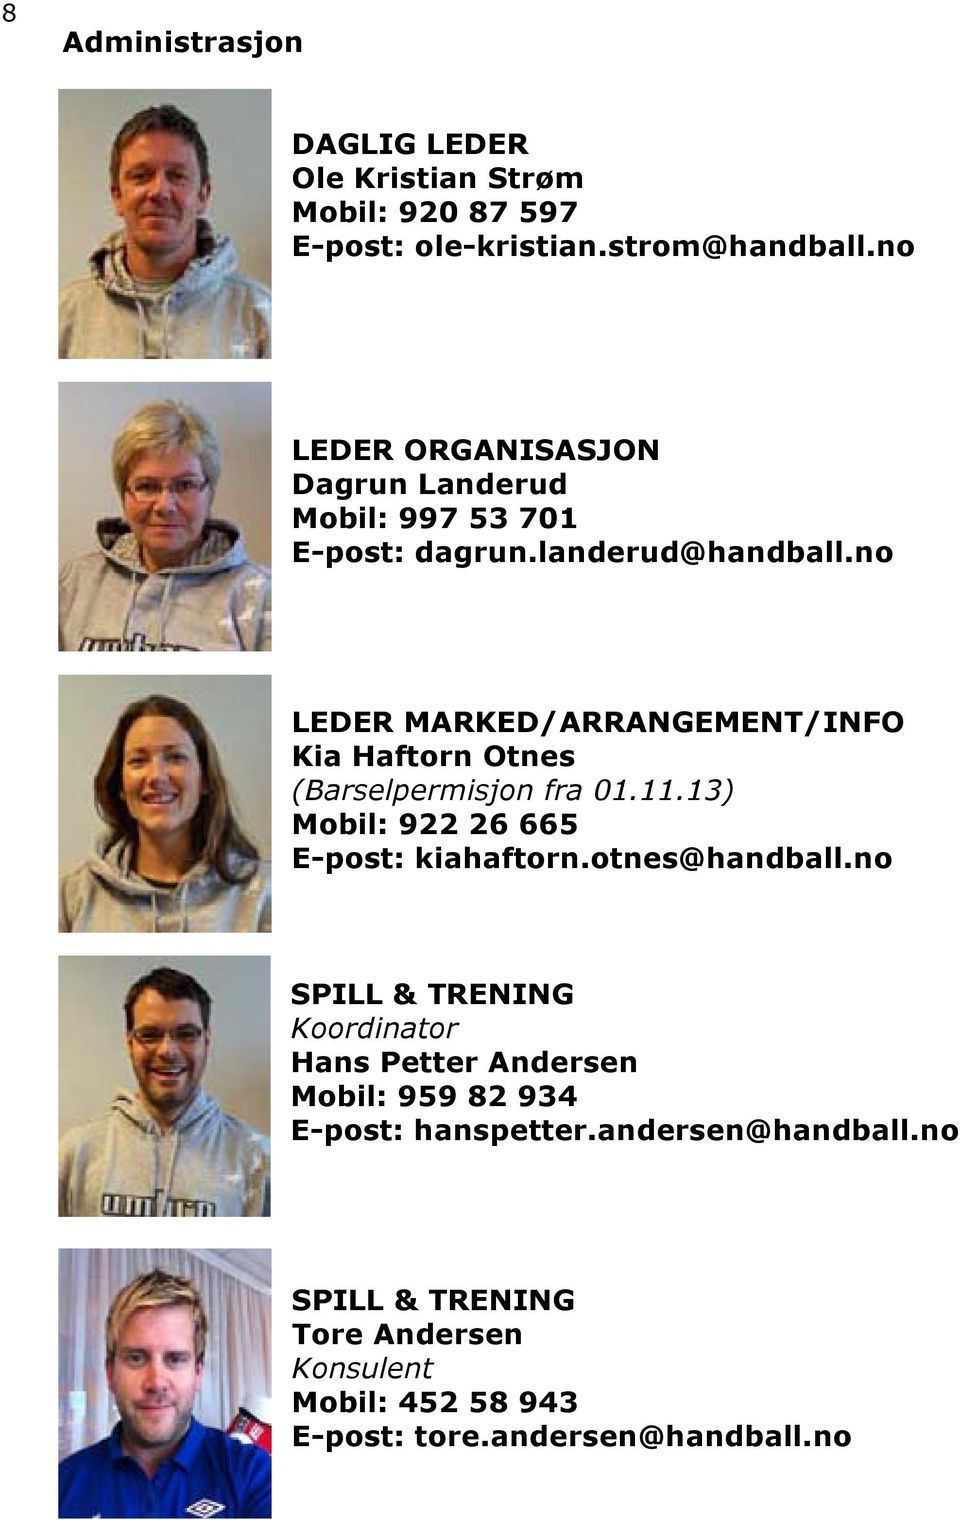 no LEDER MARKED/ARRANGEMENT/INFO Kia Haftorn Otnes (Barselpermisjon fra 01.11.13) Mobil: 922 26 665 E-post: kiahaftorn.